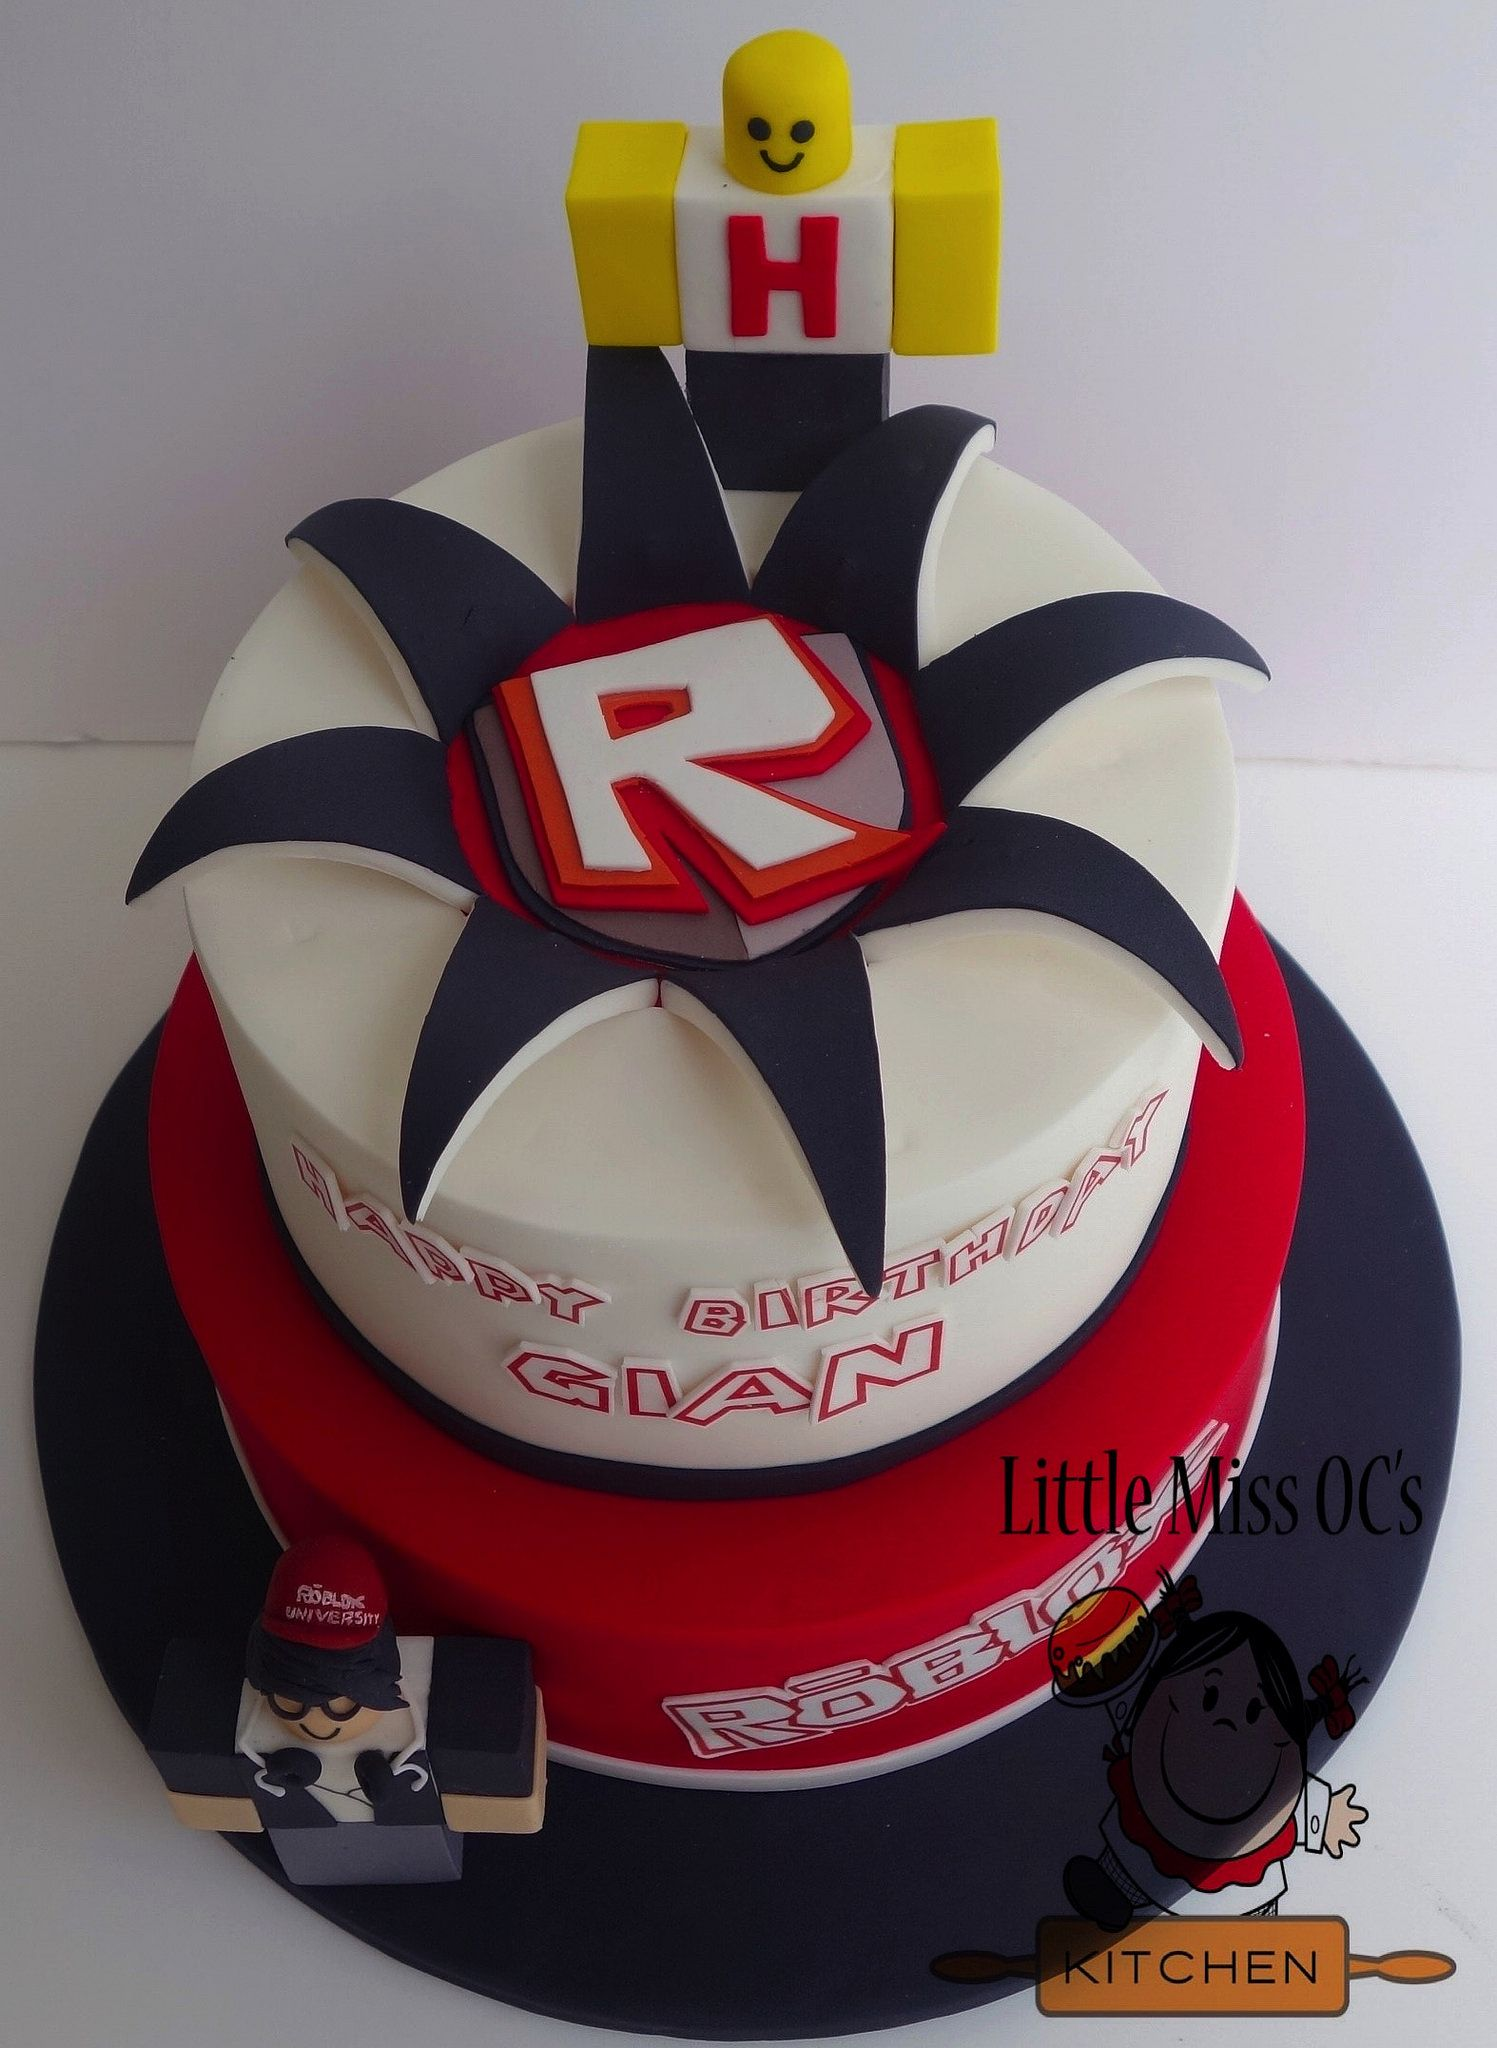 Roblox Cake Little Miss Oc S Kitchen Cakes Pinterest